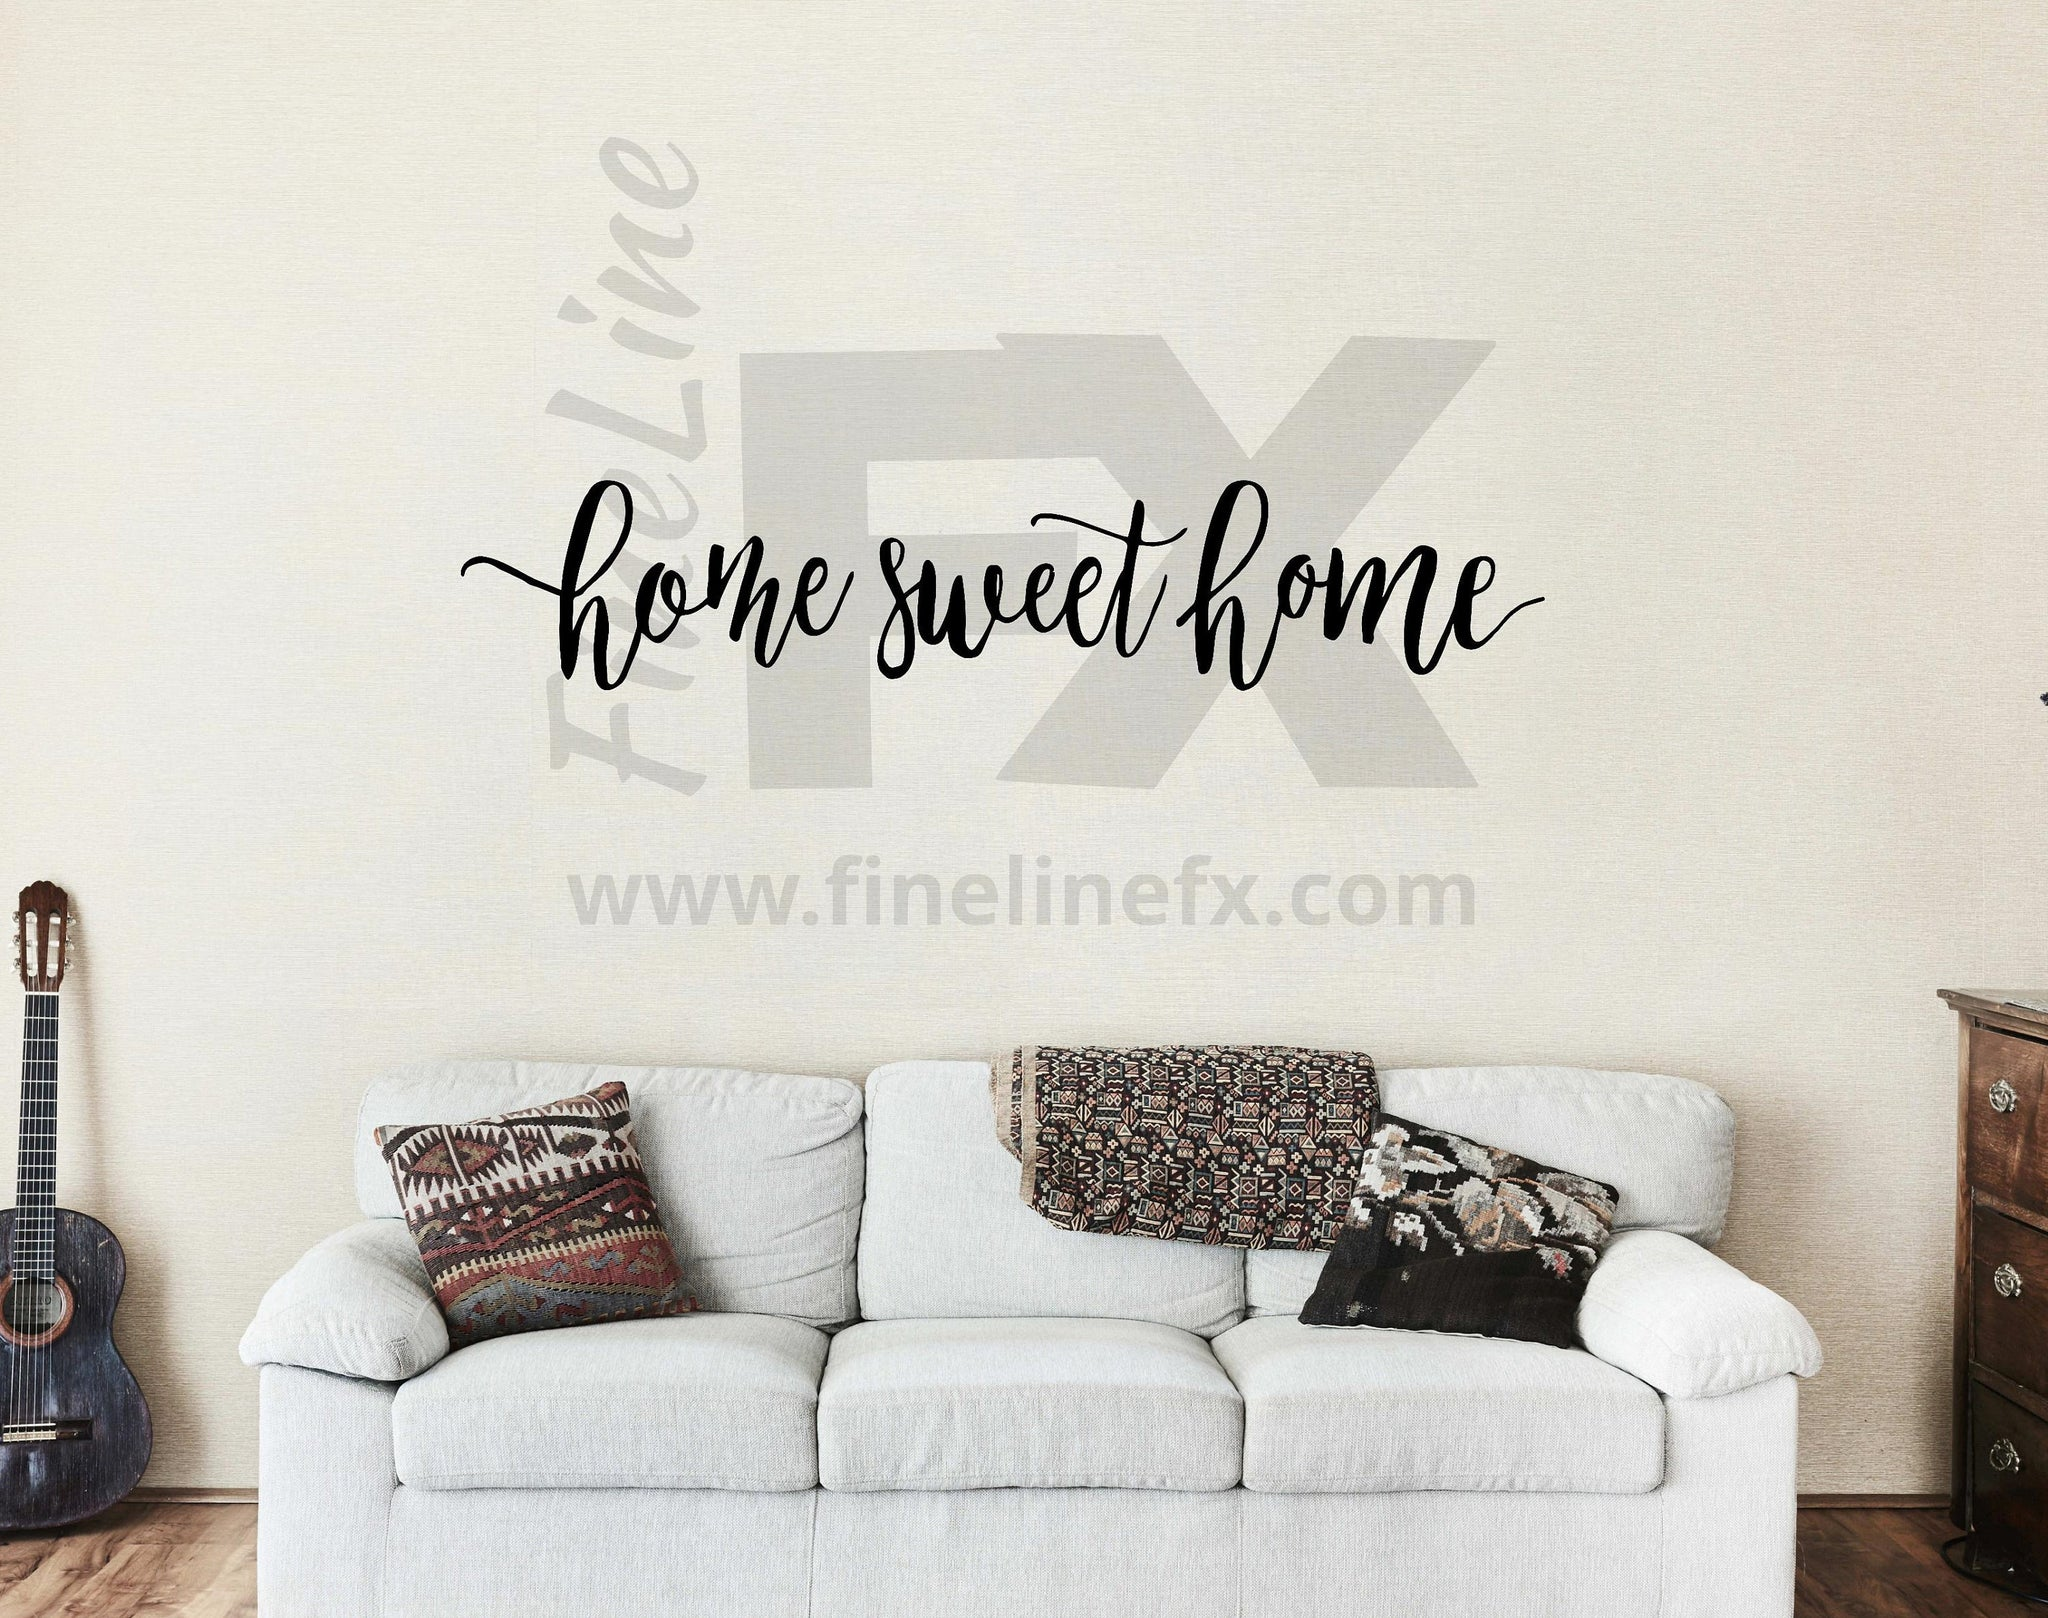 Home Sweet Home Wall Decal, Die Cut Vinyl Wall Decal